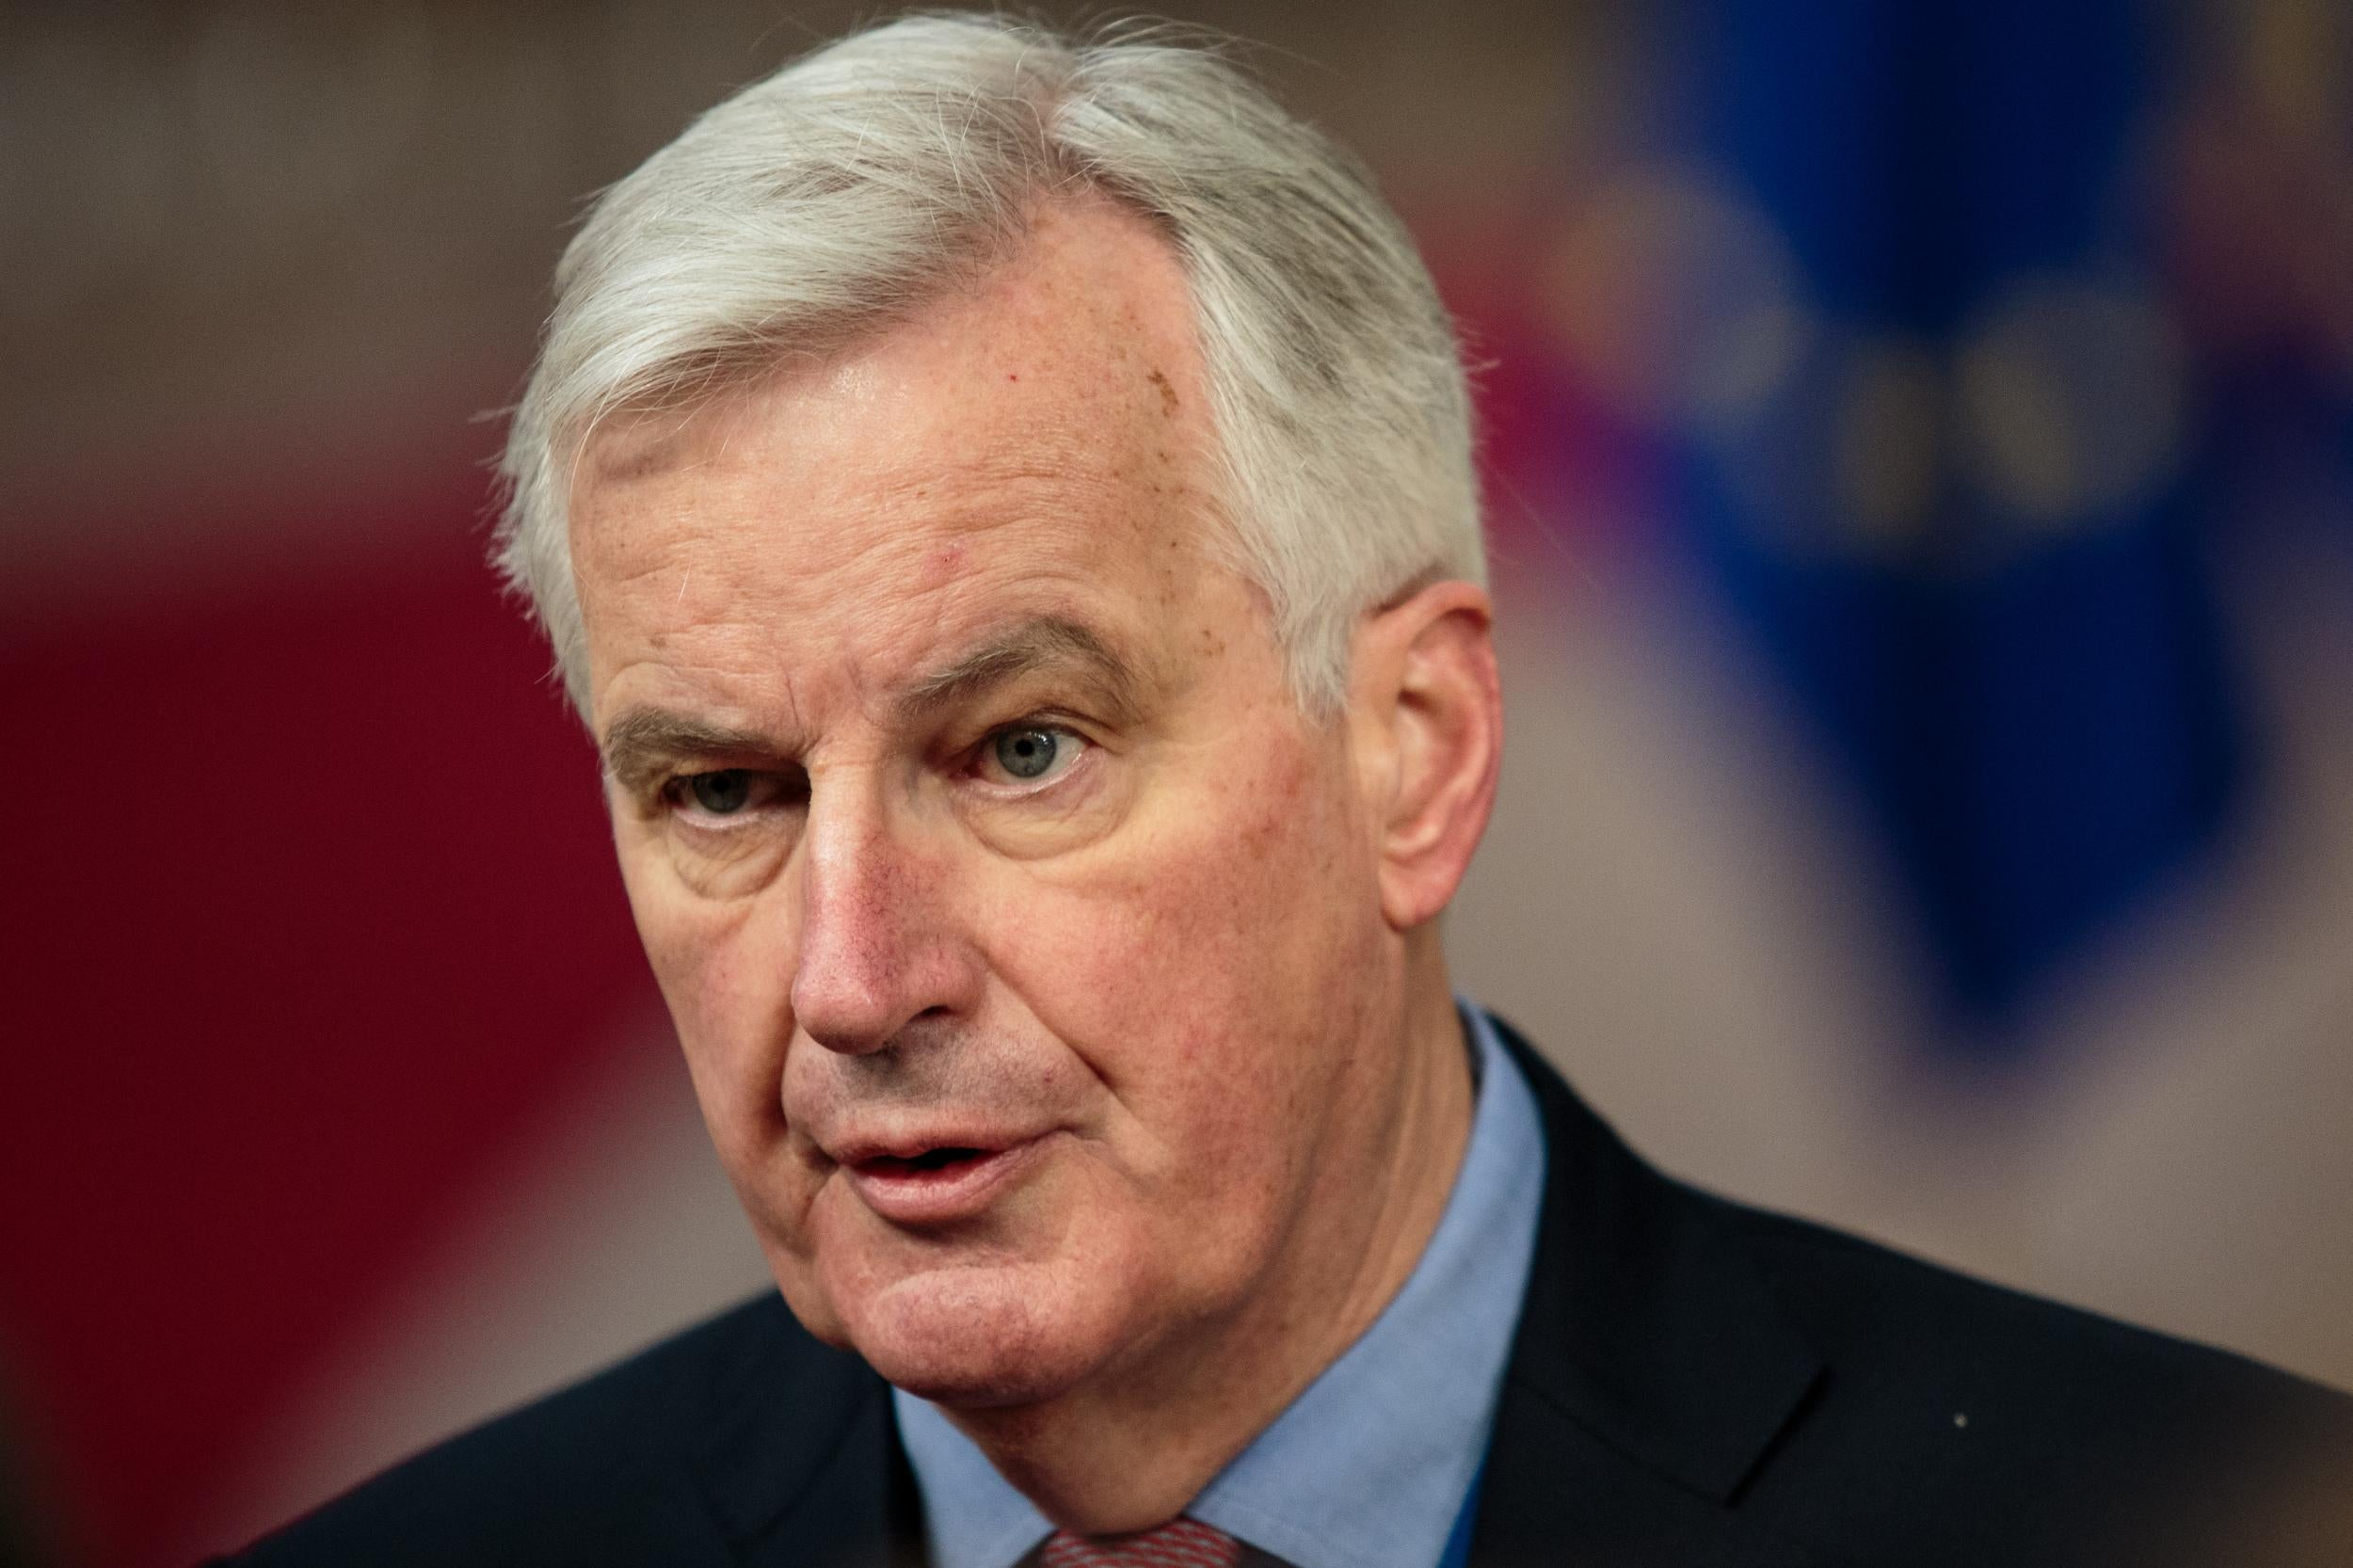 'Face the reality' of Brexit and don't blame us when it goes wrong, EU's chief negotiator tells UK